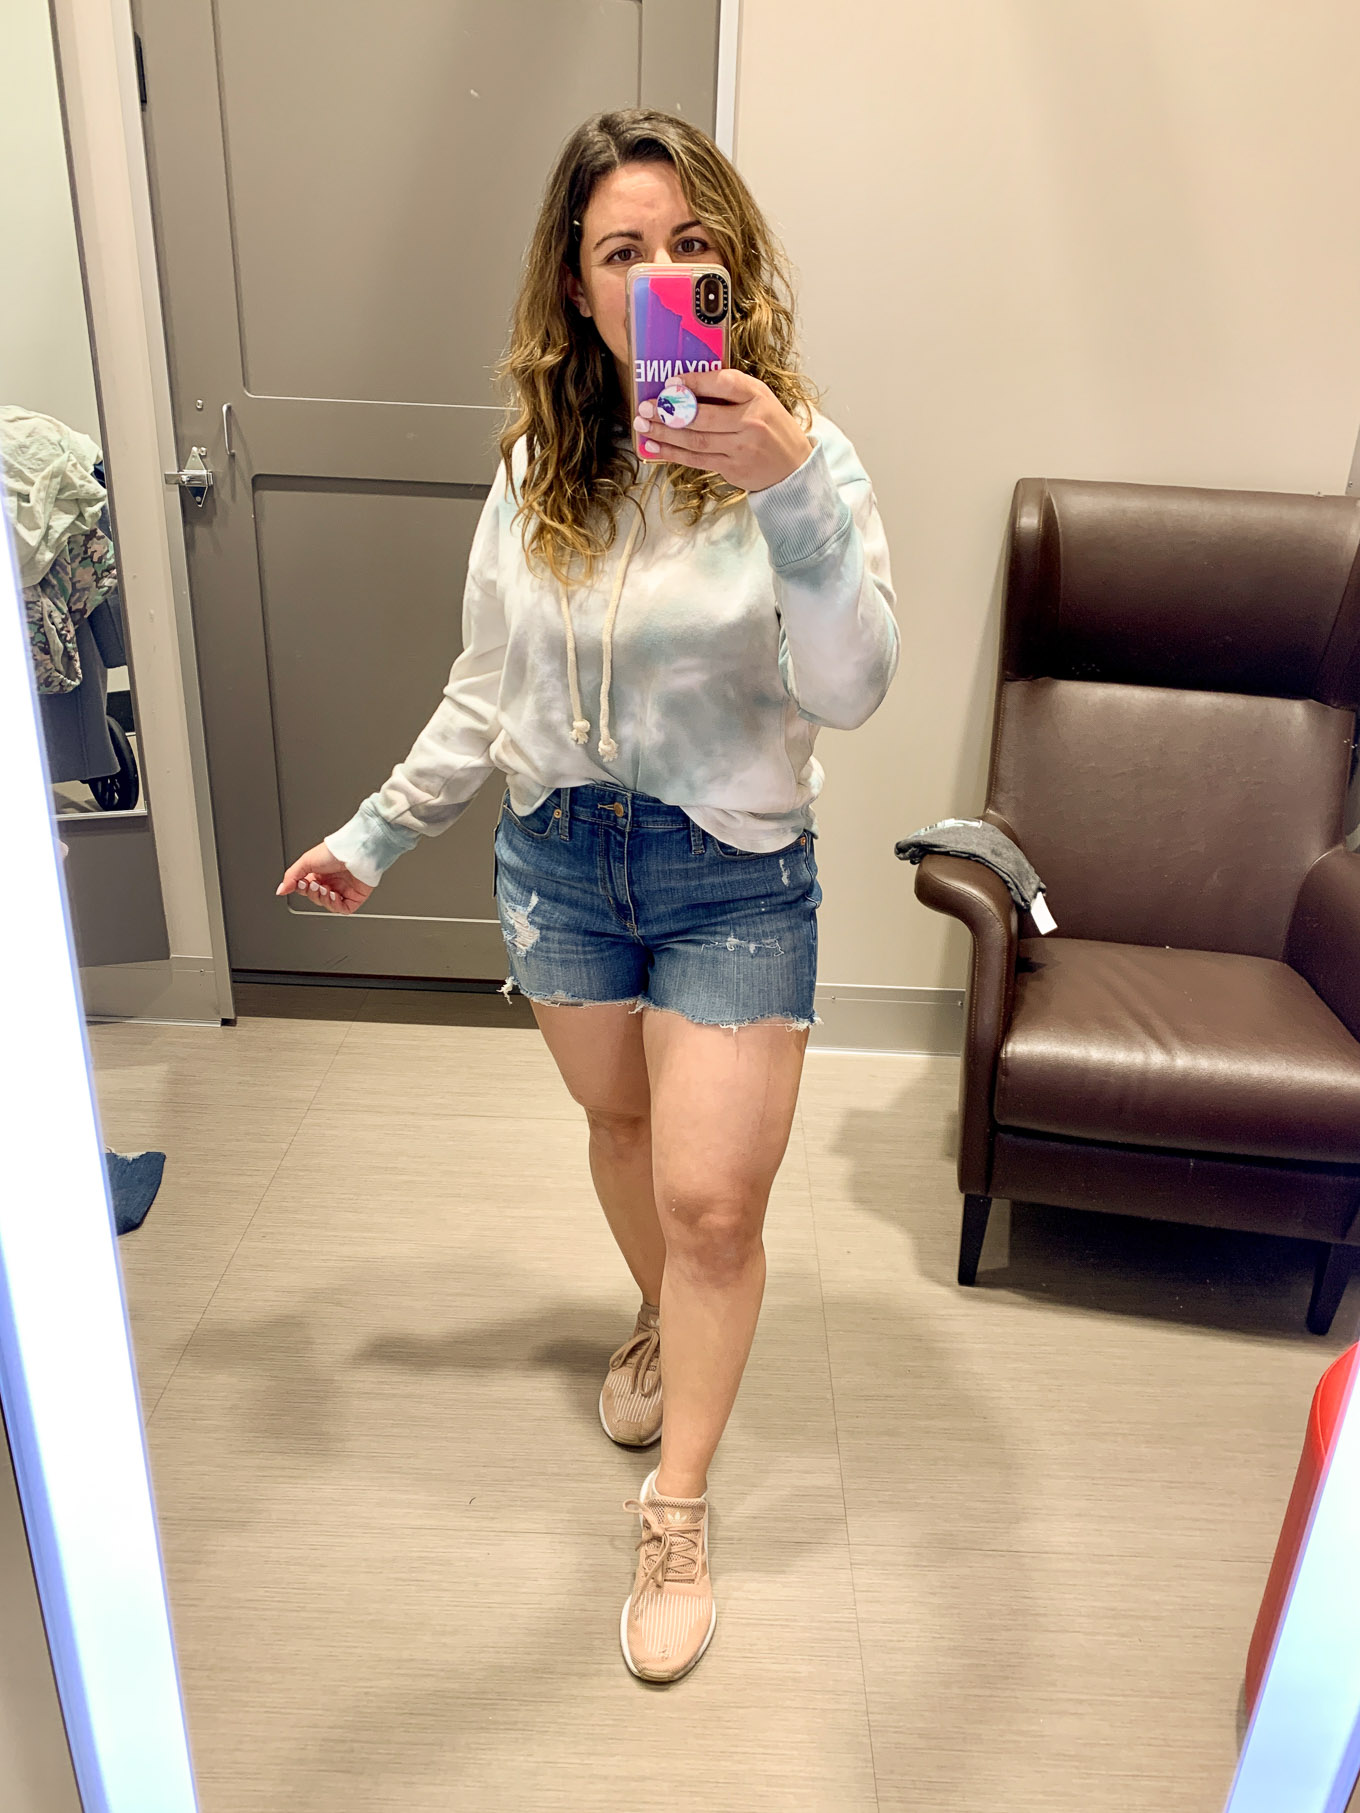 Target Try On by popular Chicago fashion blog, Glass of Glam: image of a woman wearing Target Universal Thread Women's Plus Size High-Rise Distressed Jean Shorts and a Target Universal Thread Women's Plus Size Crewneck Tie-Dye Hoodie Sweatshirt.